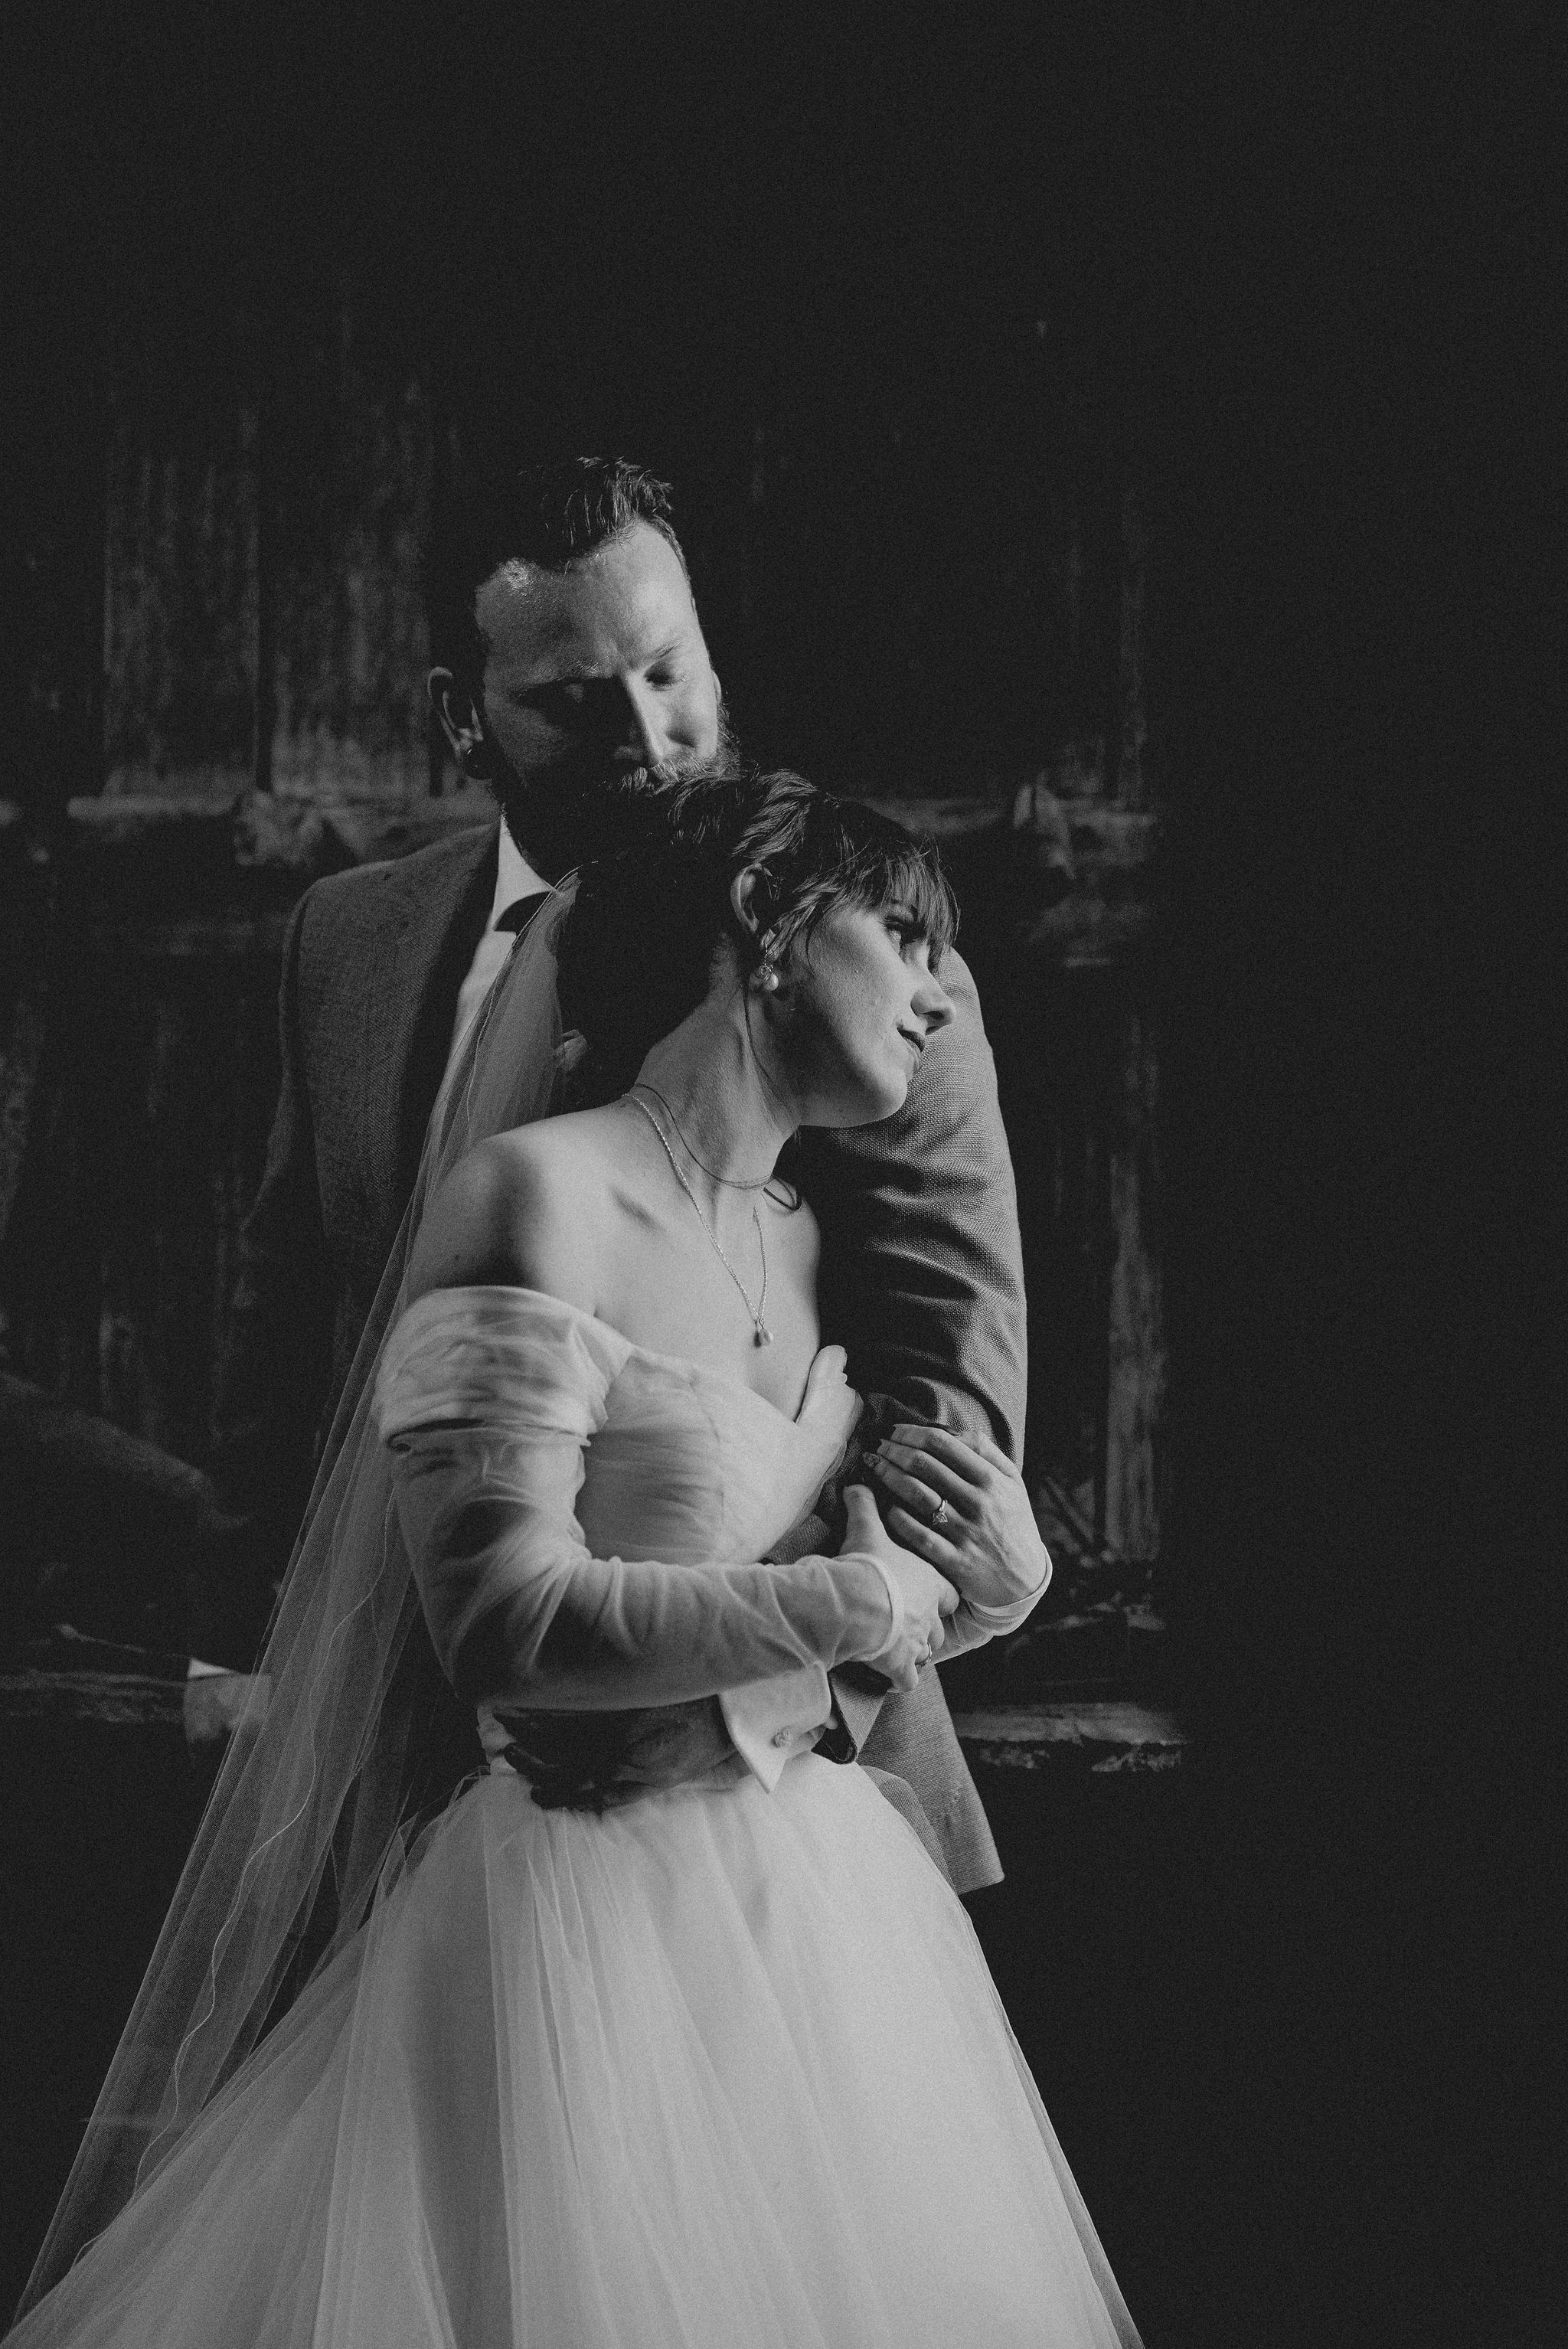 Bride and groom hugging in a rustic wooden workshop in black and white